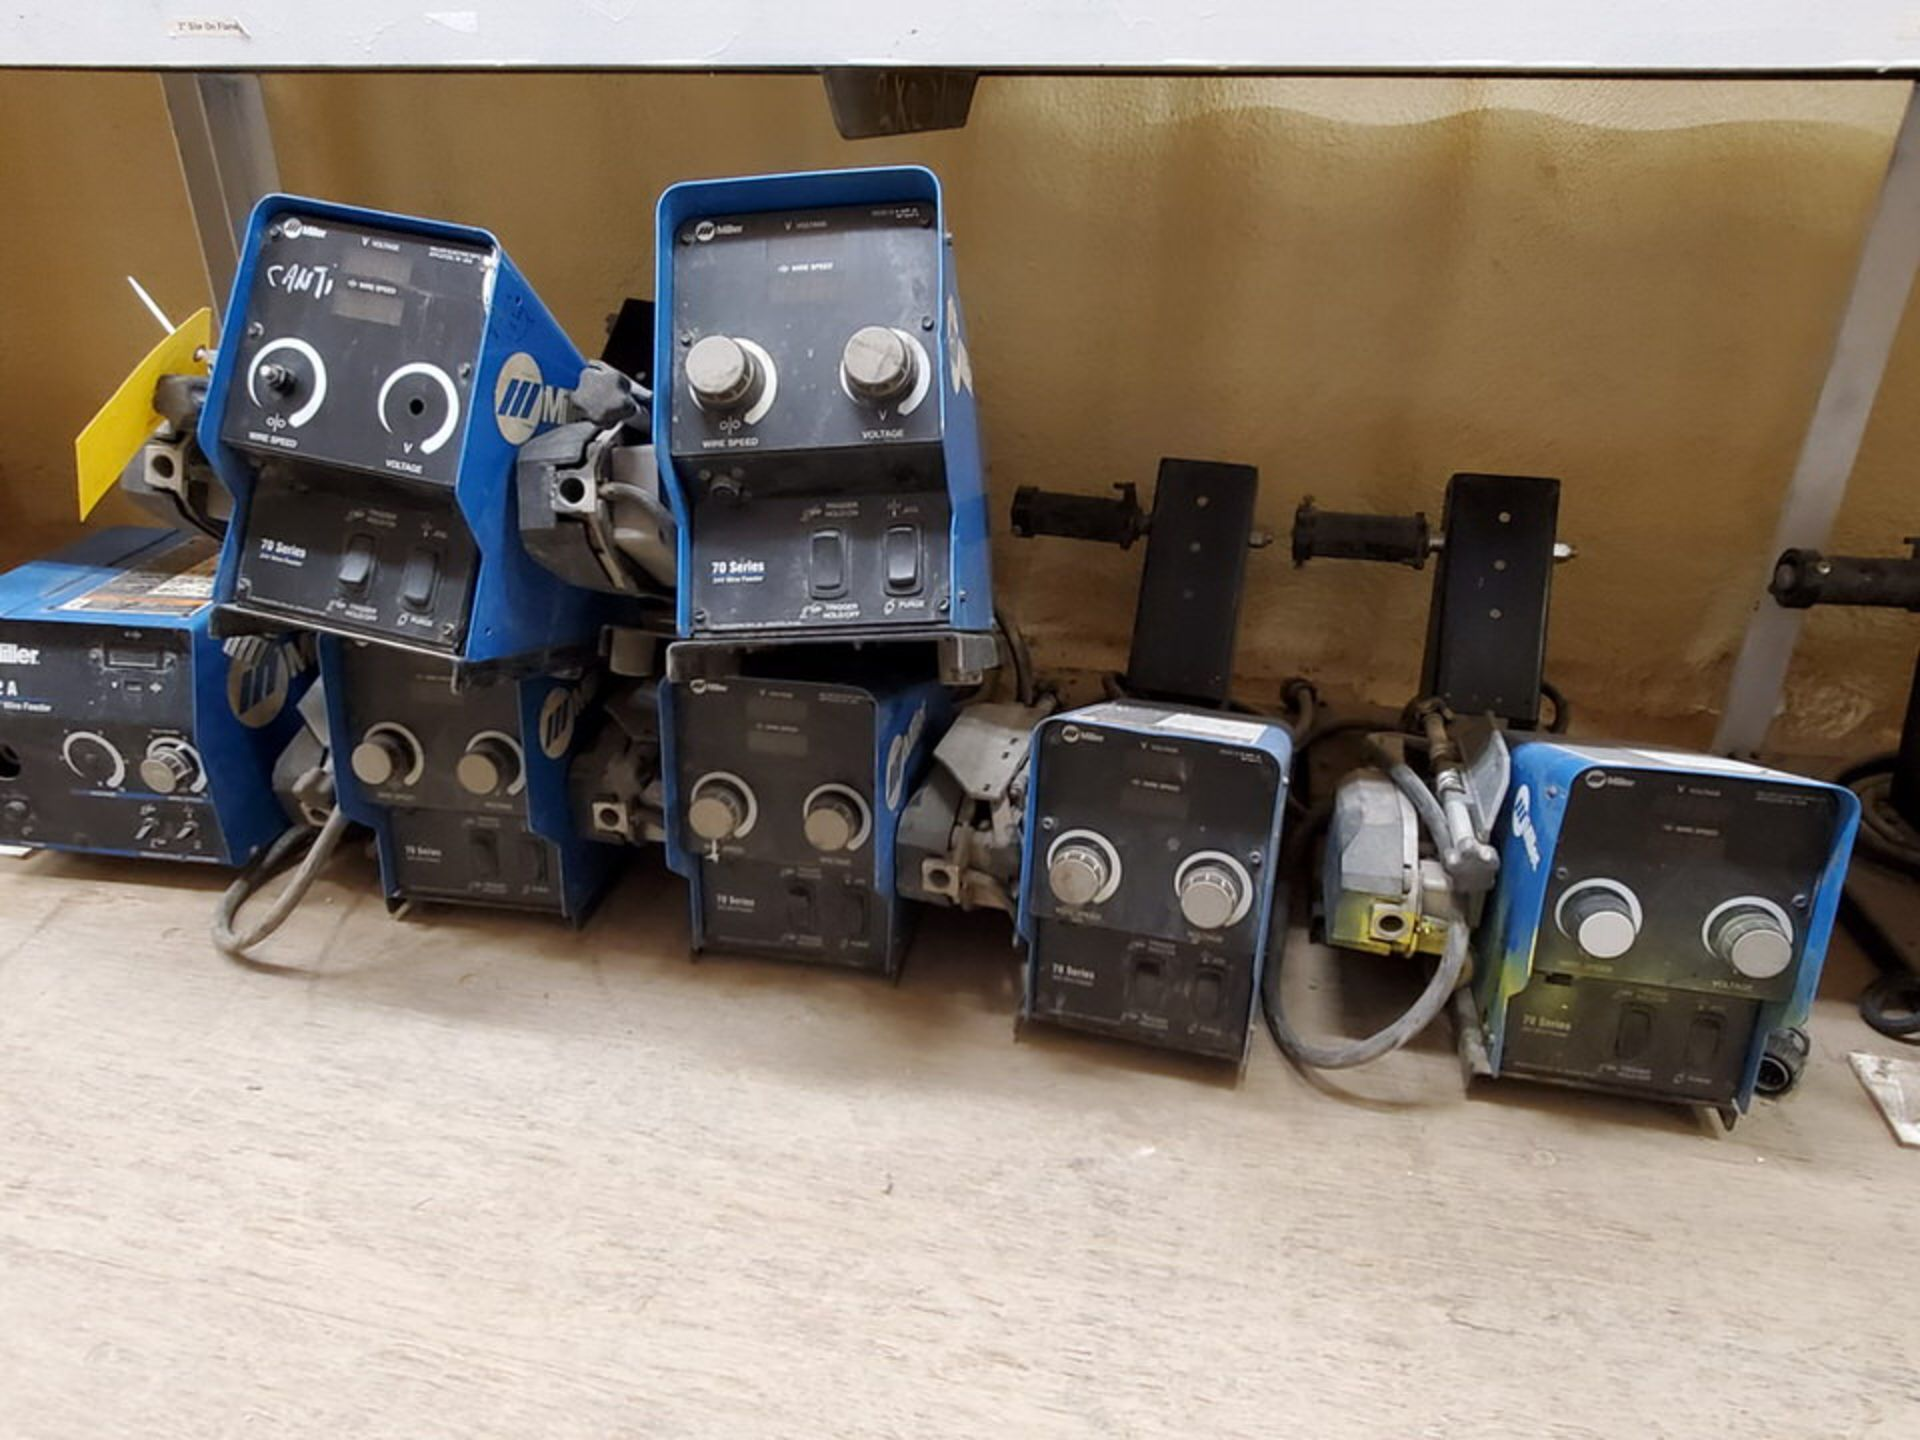 Miller 70 Series (9) 24V Wire Feeders W/ (1) 22A 24V Wire Feeder - Image 4 of 6